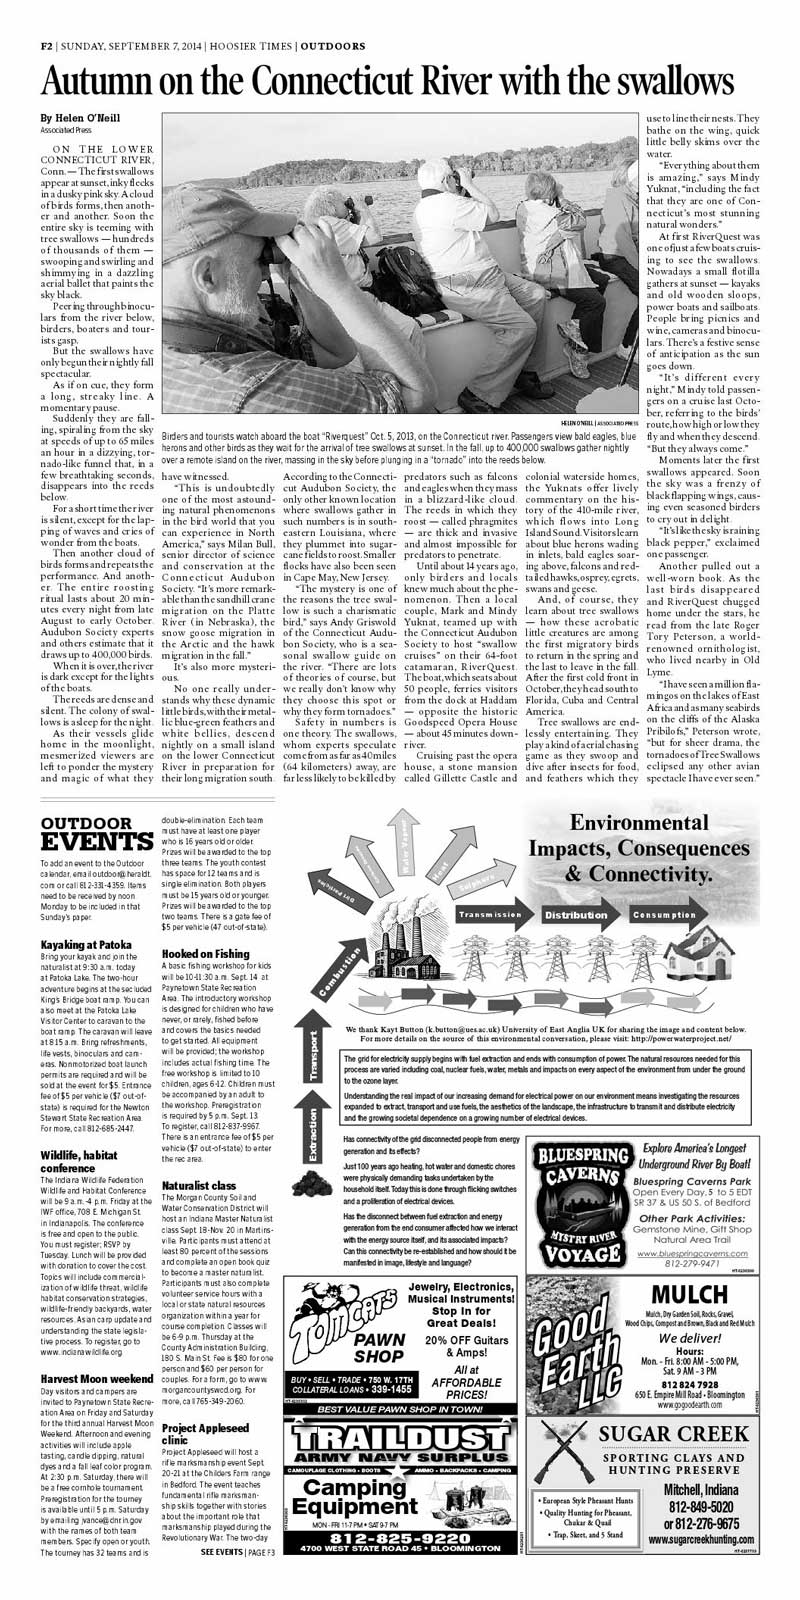 Hoosier Times article